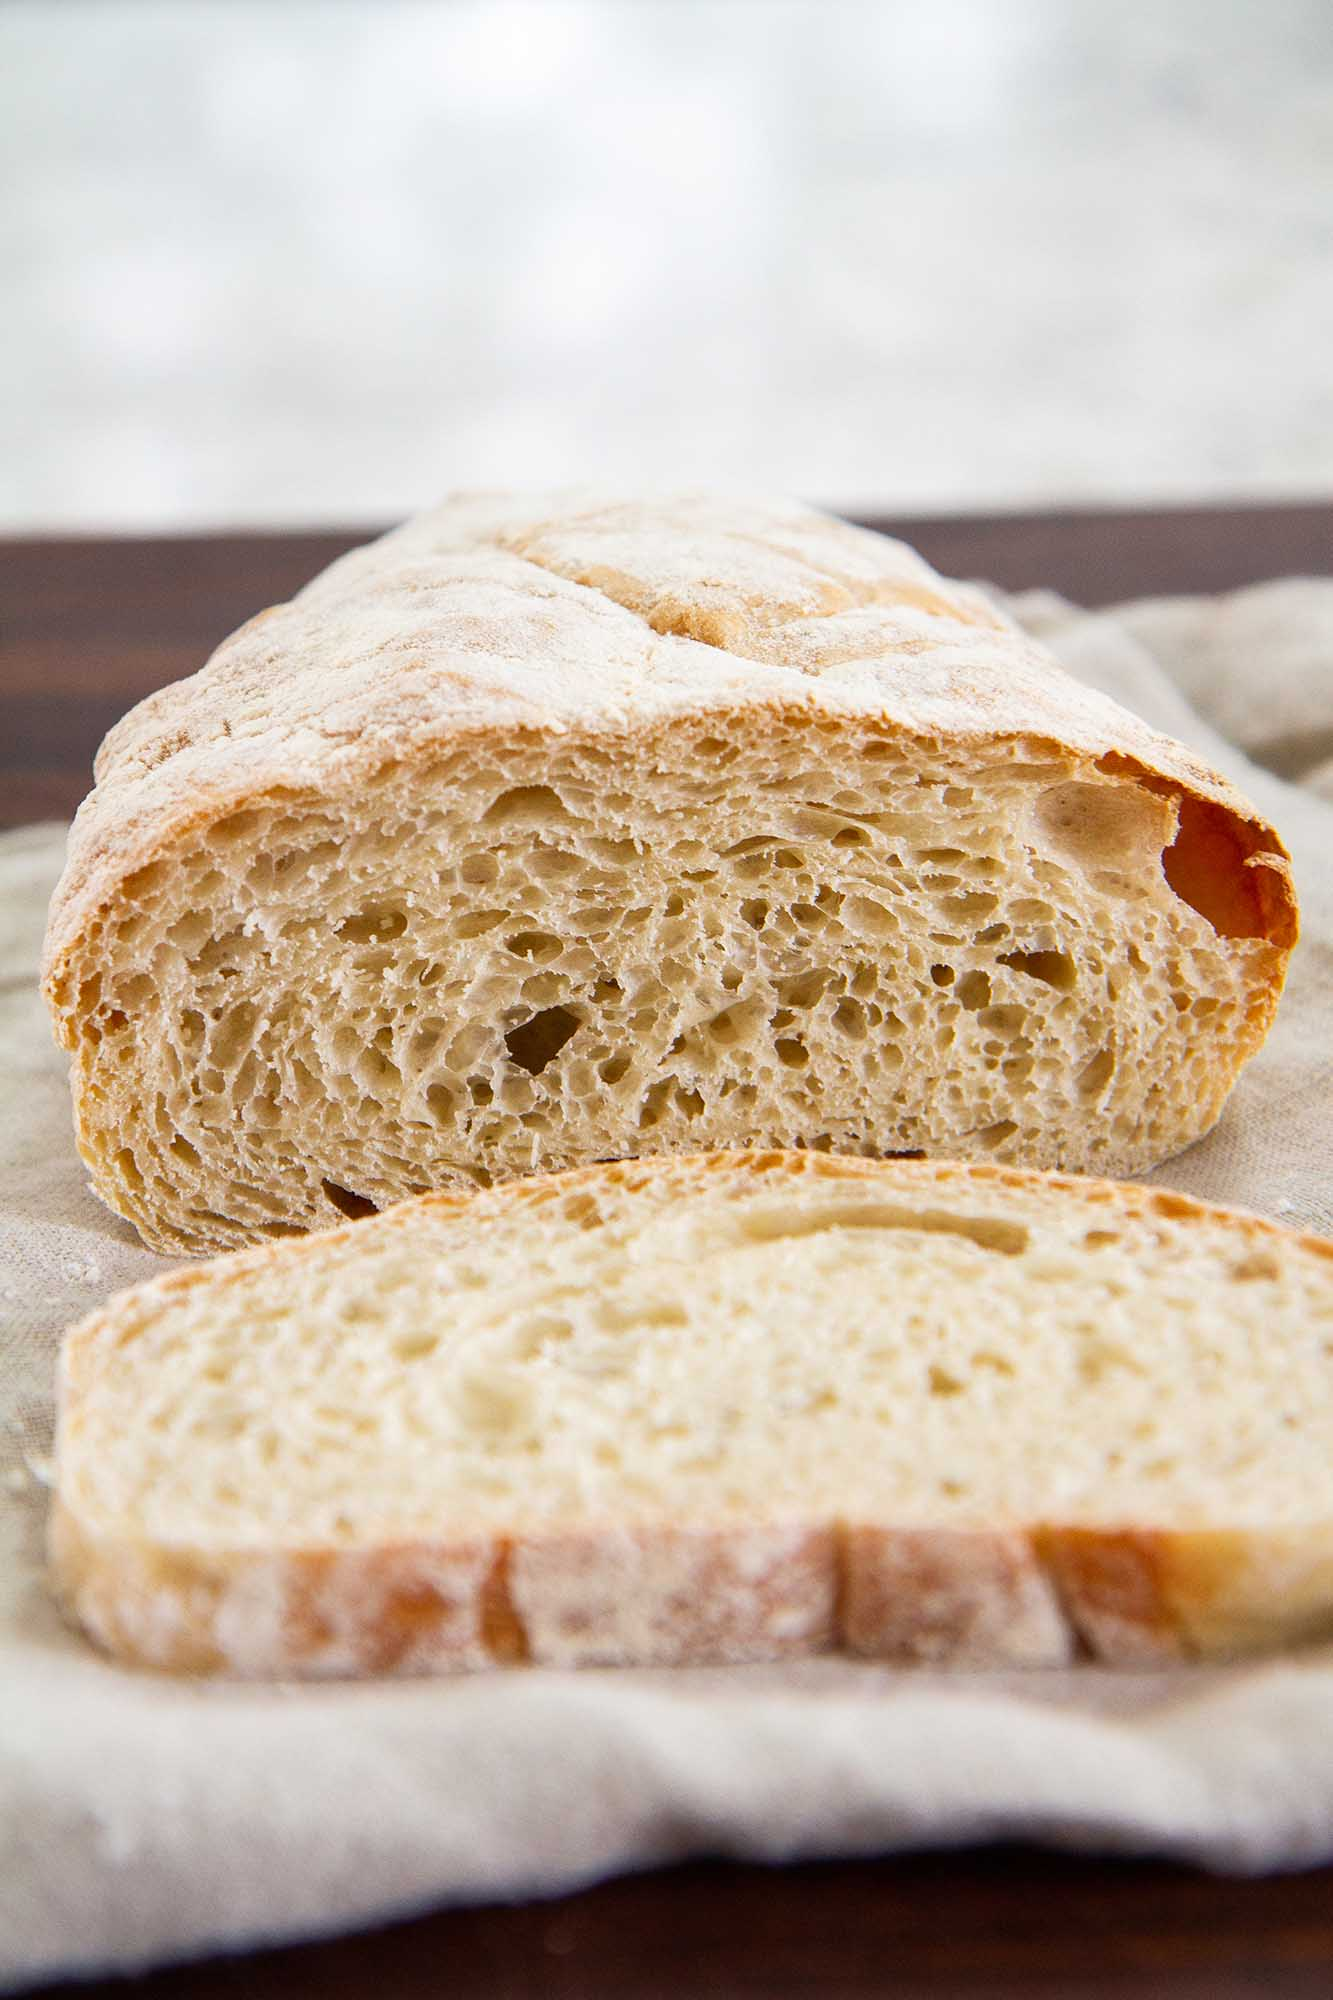 No Knead Ciabatta Bread -- A deliciously airy, crusty homemade ciabatta bread recipe that requires NO kneading. Perfect for toast, sandwiches and more. @girlversusdough #girlversusdough #nokneadbread #homemadebread #easybreadrecipe